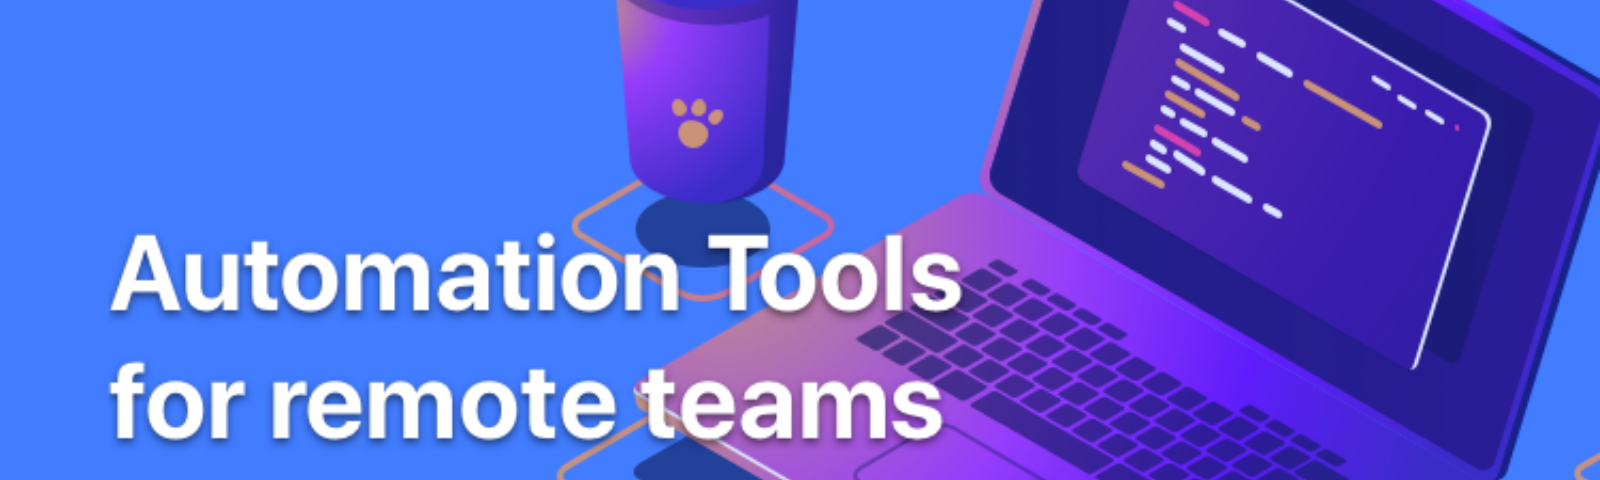 Automation Tools for Remote Teams